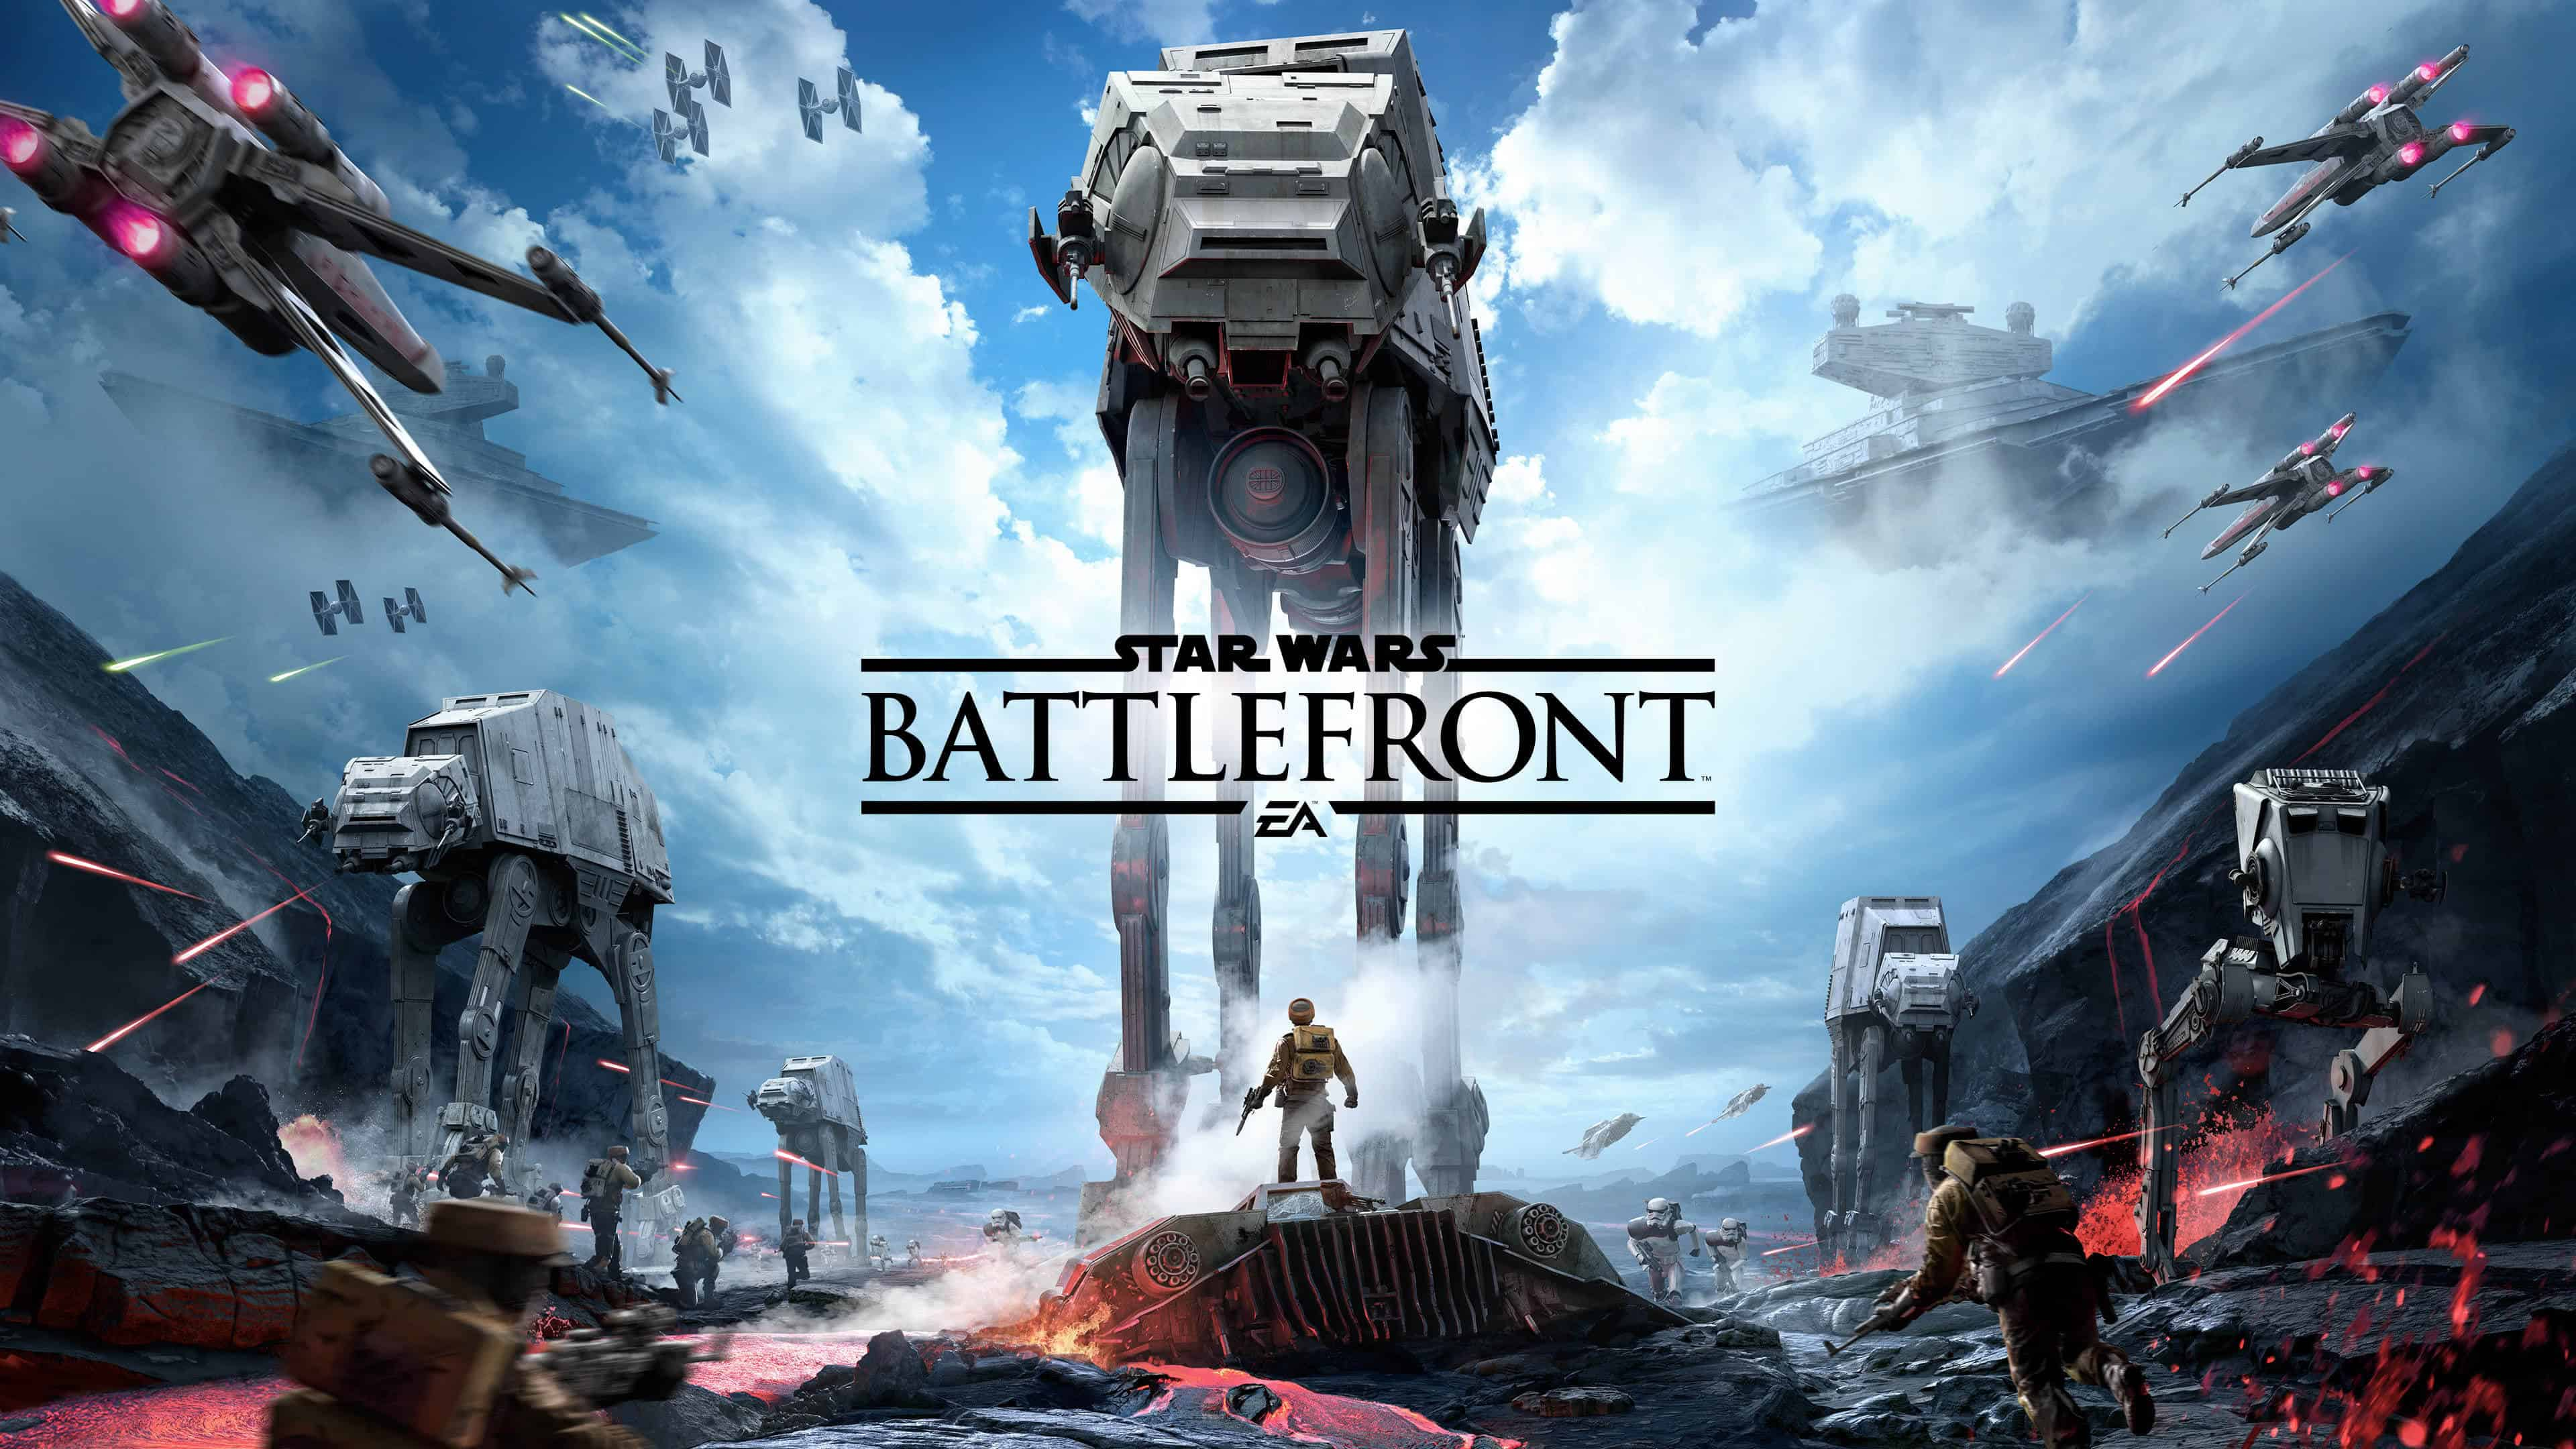 Star Wars Battlefront Uhd 4k Wallpaper Pixelz